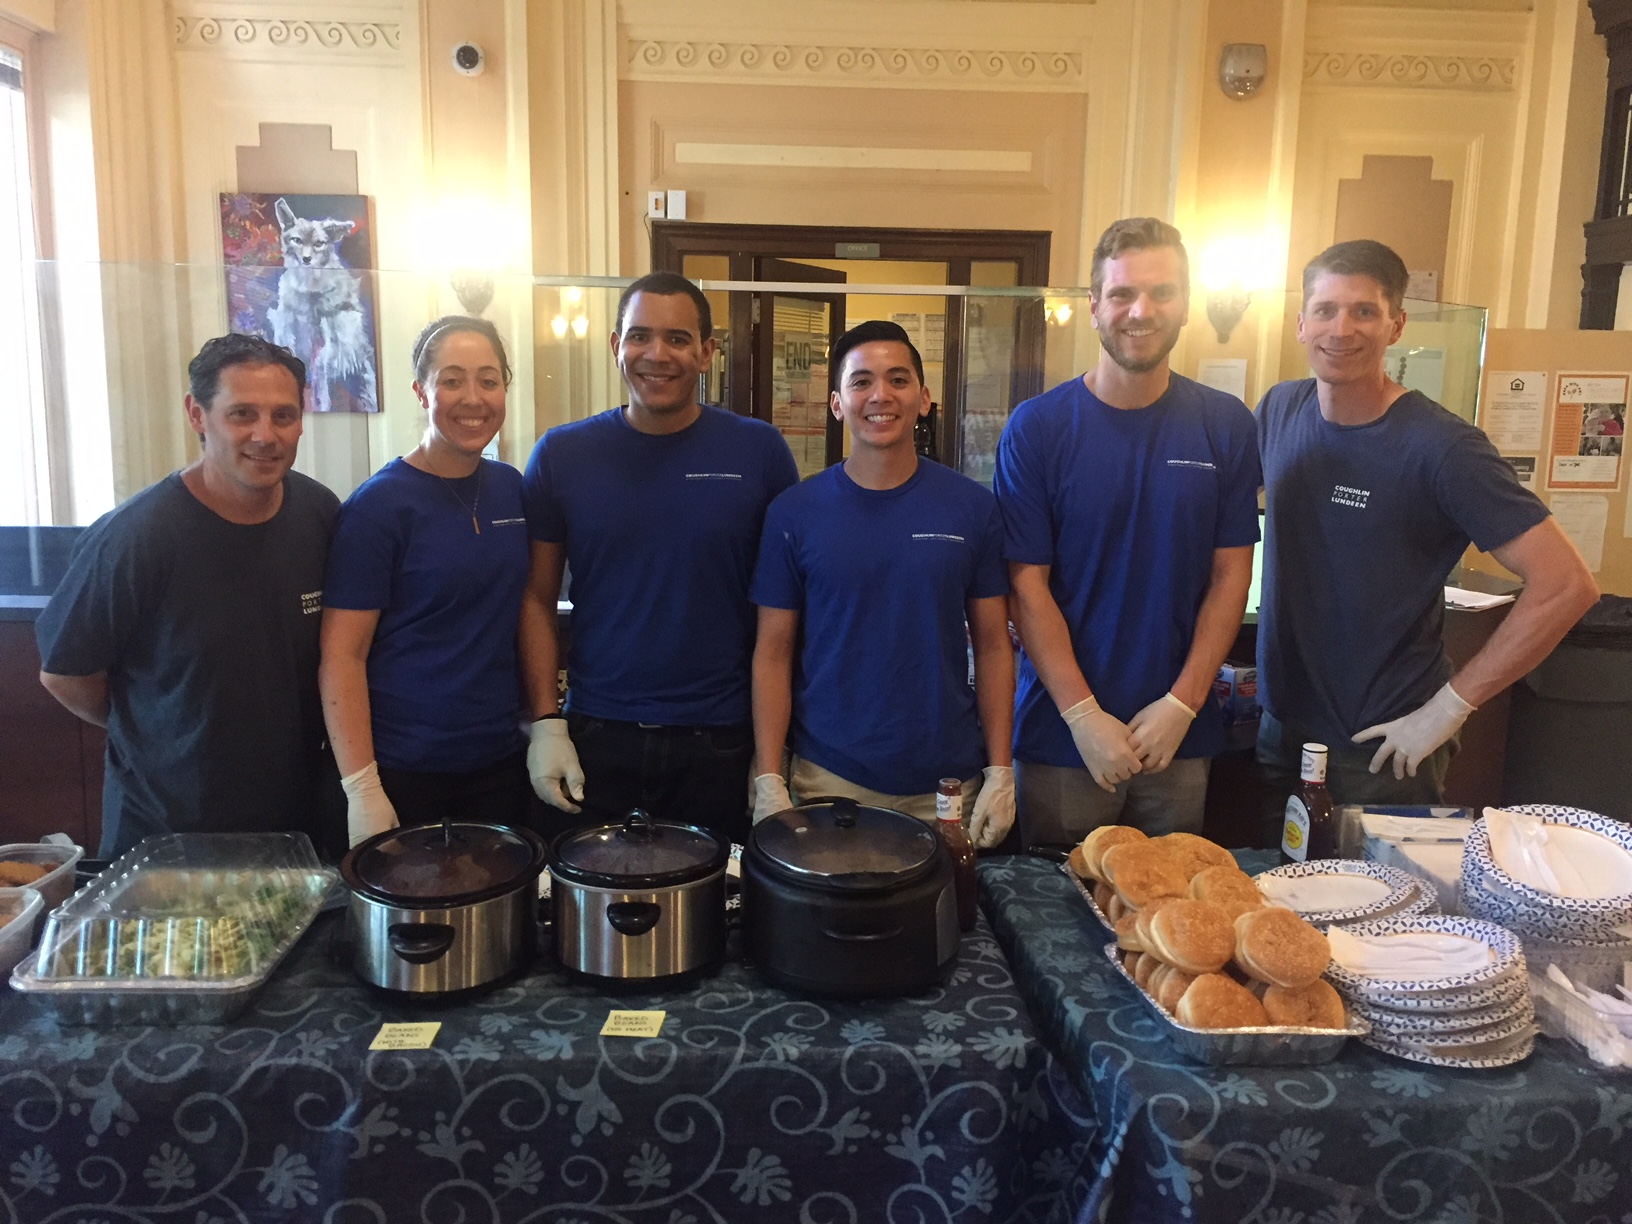 Coughlin Porter Lundeen engineers Colin, Garo, Cory, Marsha, Albert and Javier serve a meal to Plymouth House residents.